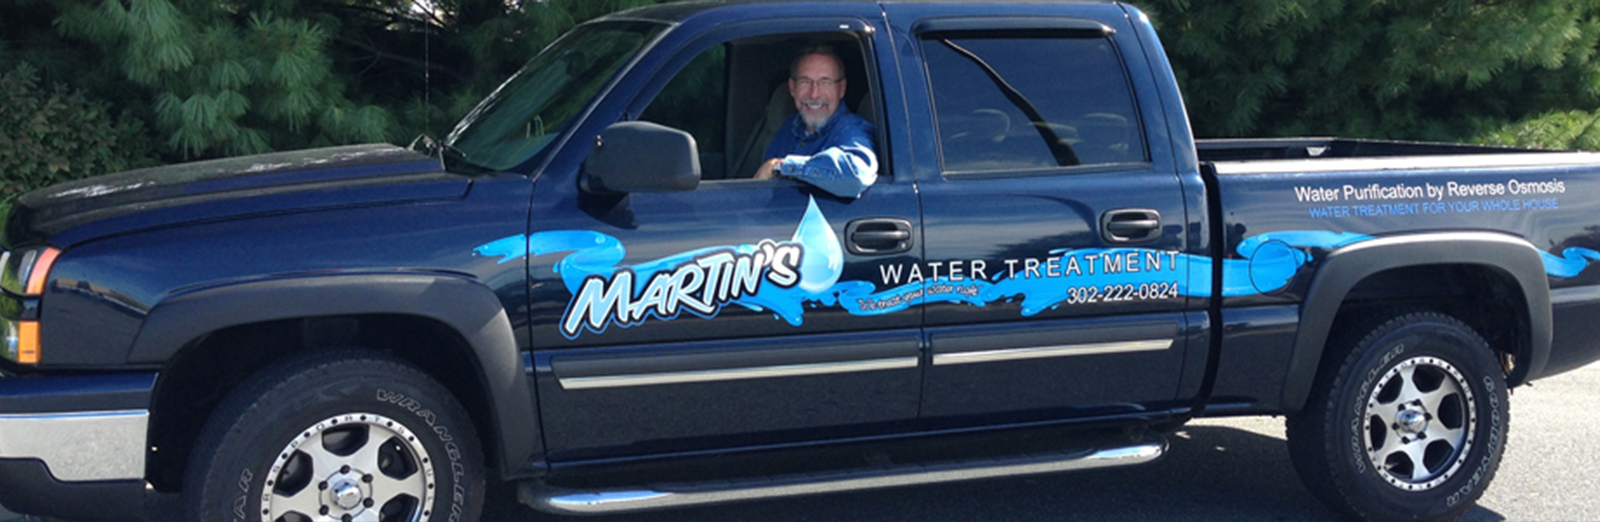 Martin's Water Treatment company truck